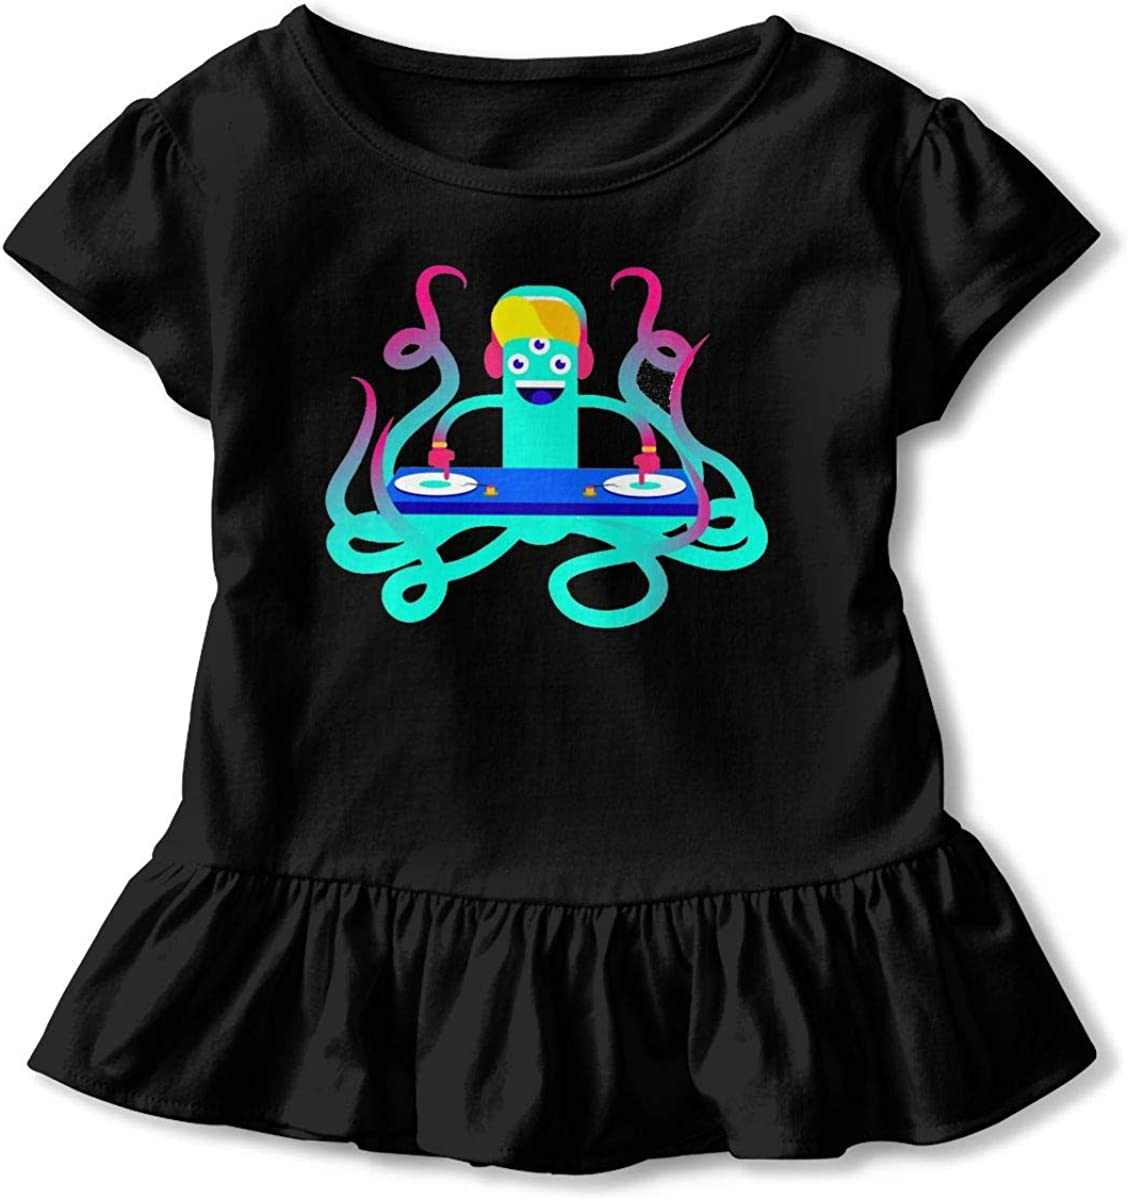 Not Available Play Dj Shirt Baby Girls Ruffles Casual Shirt Dress for 2-6 Years Old Baby